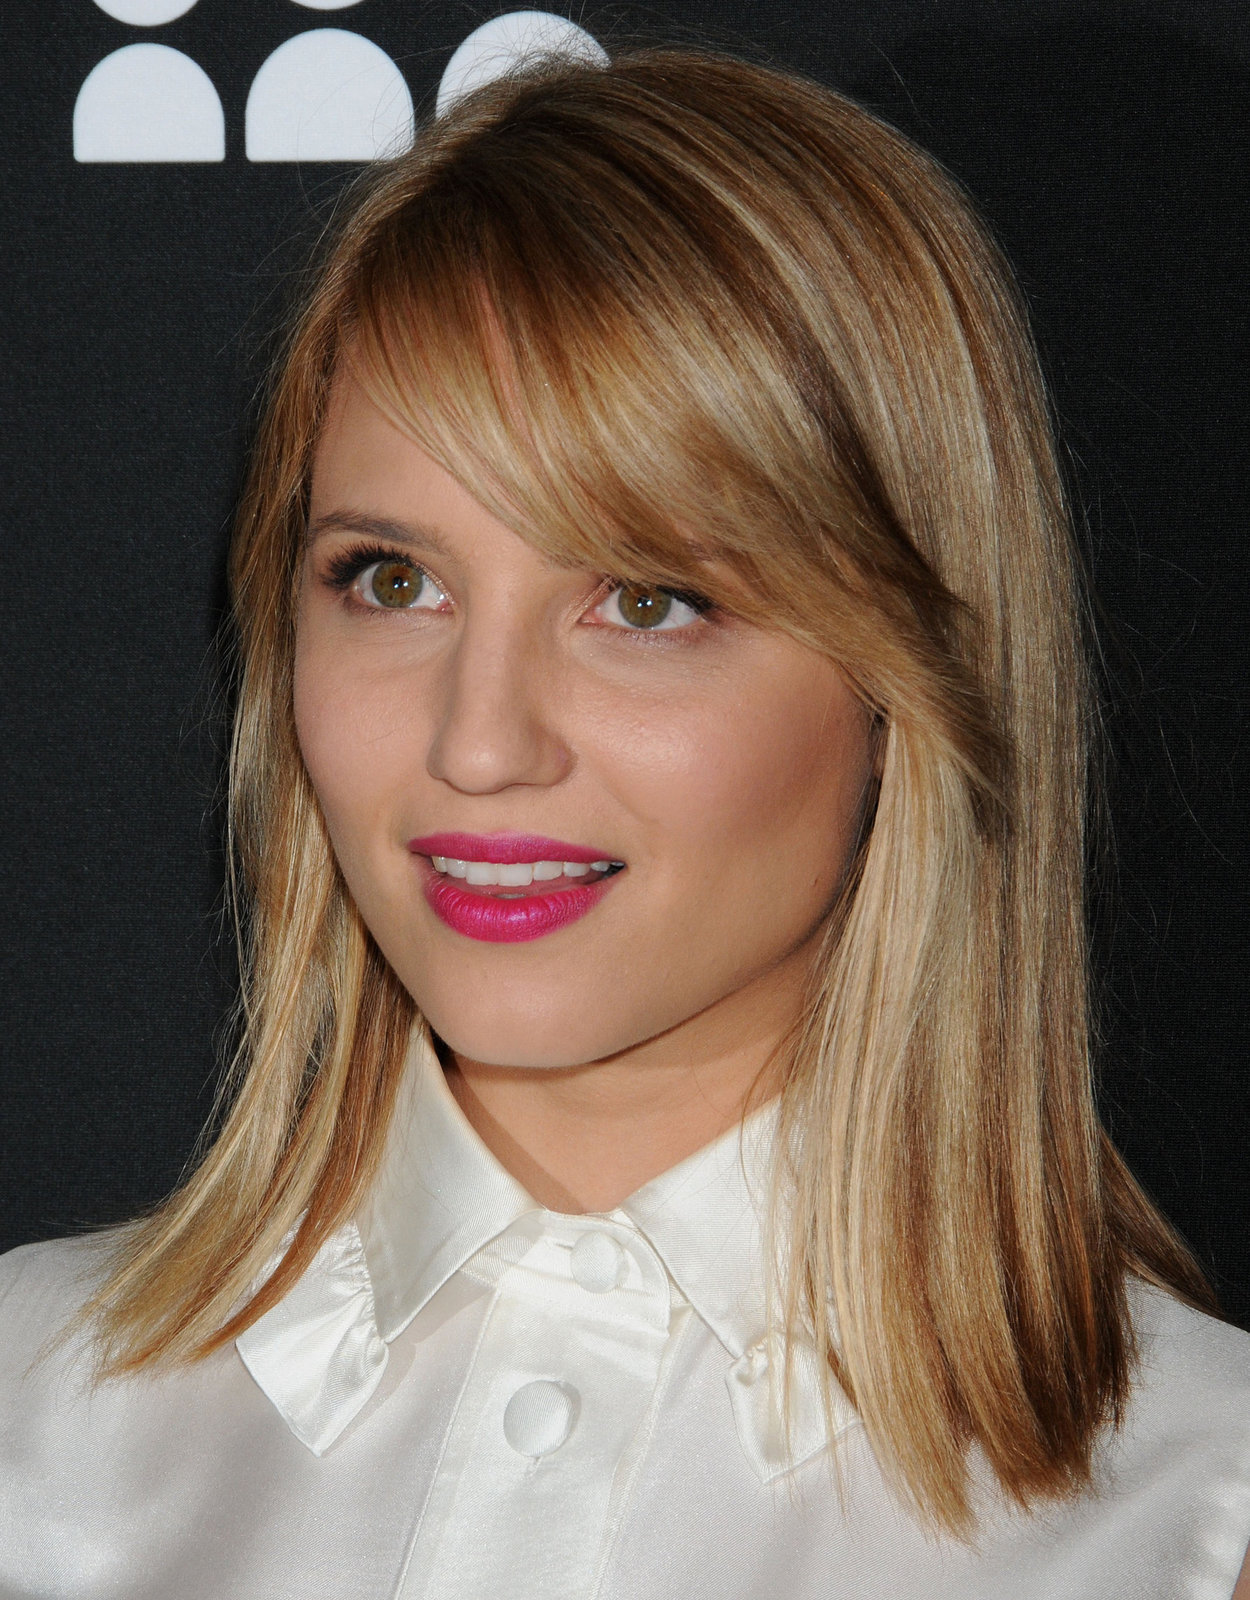 Dianna Agron attends the New MySpace Launch Event, June 12, 2013